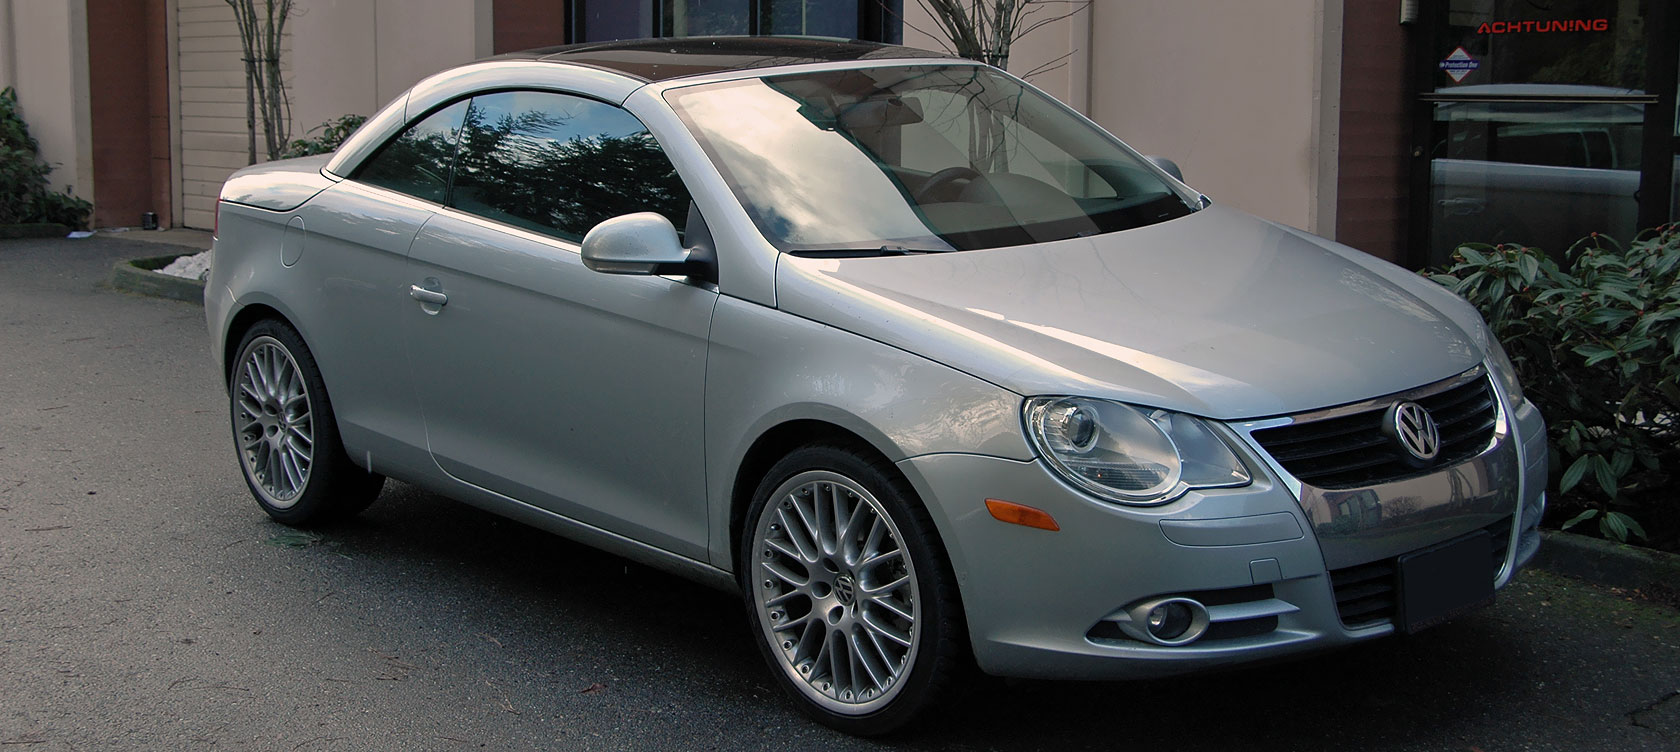 Performance parts and upgrades for VW Eos - Achtuning